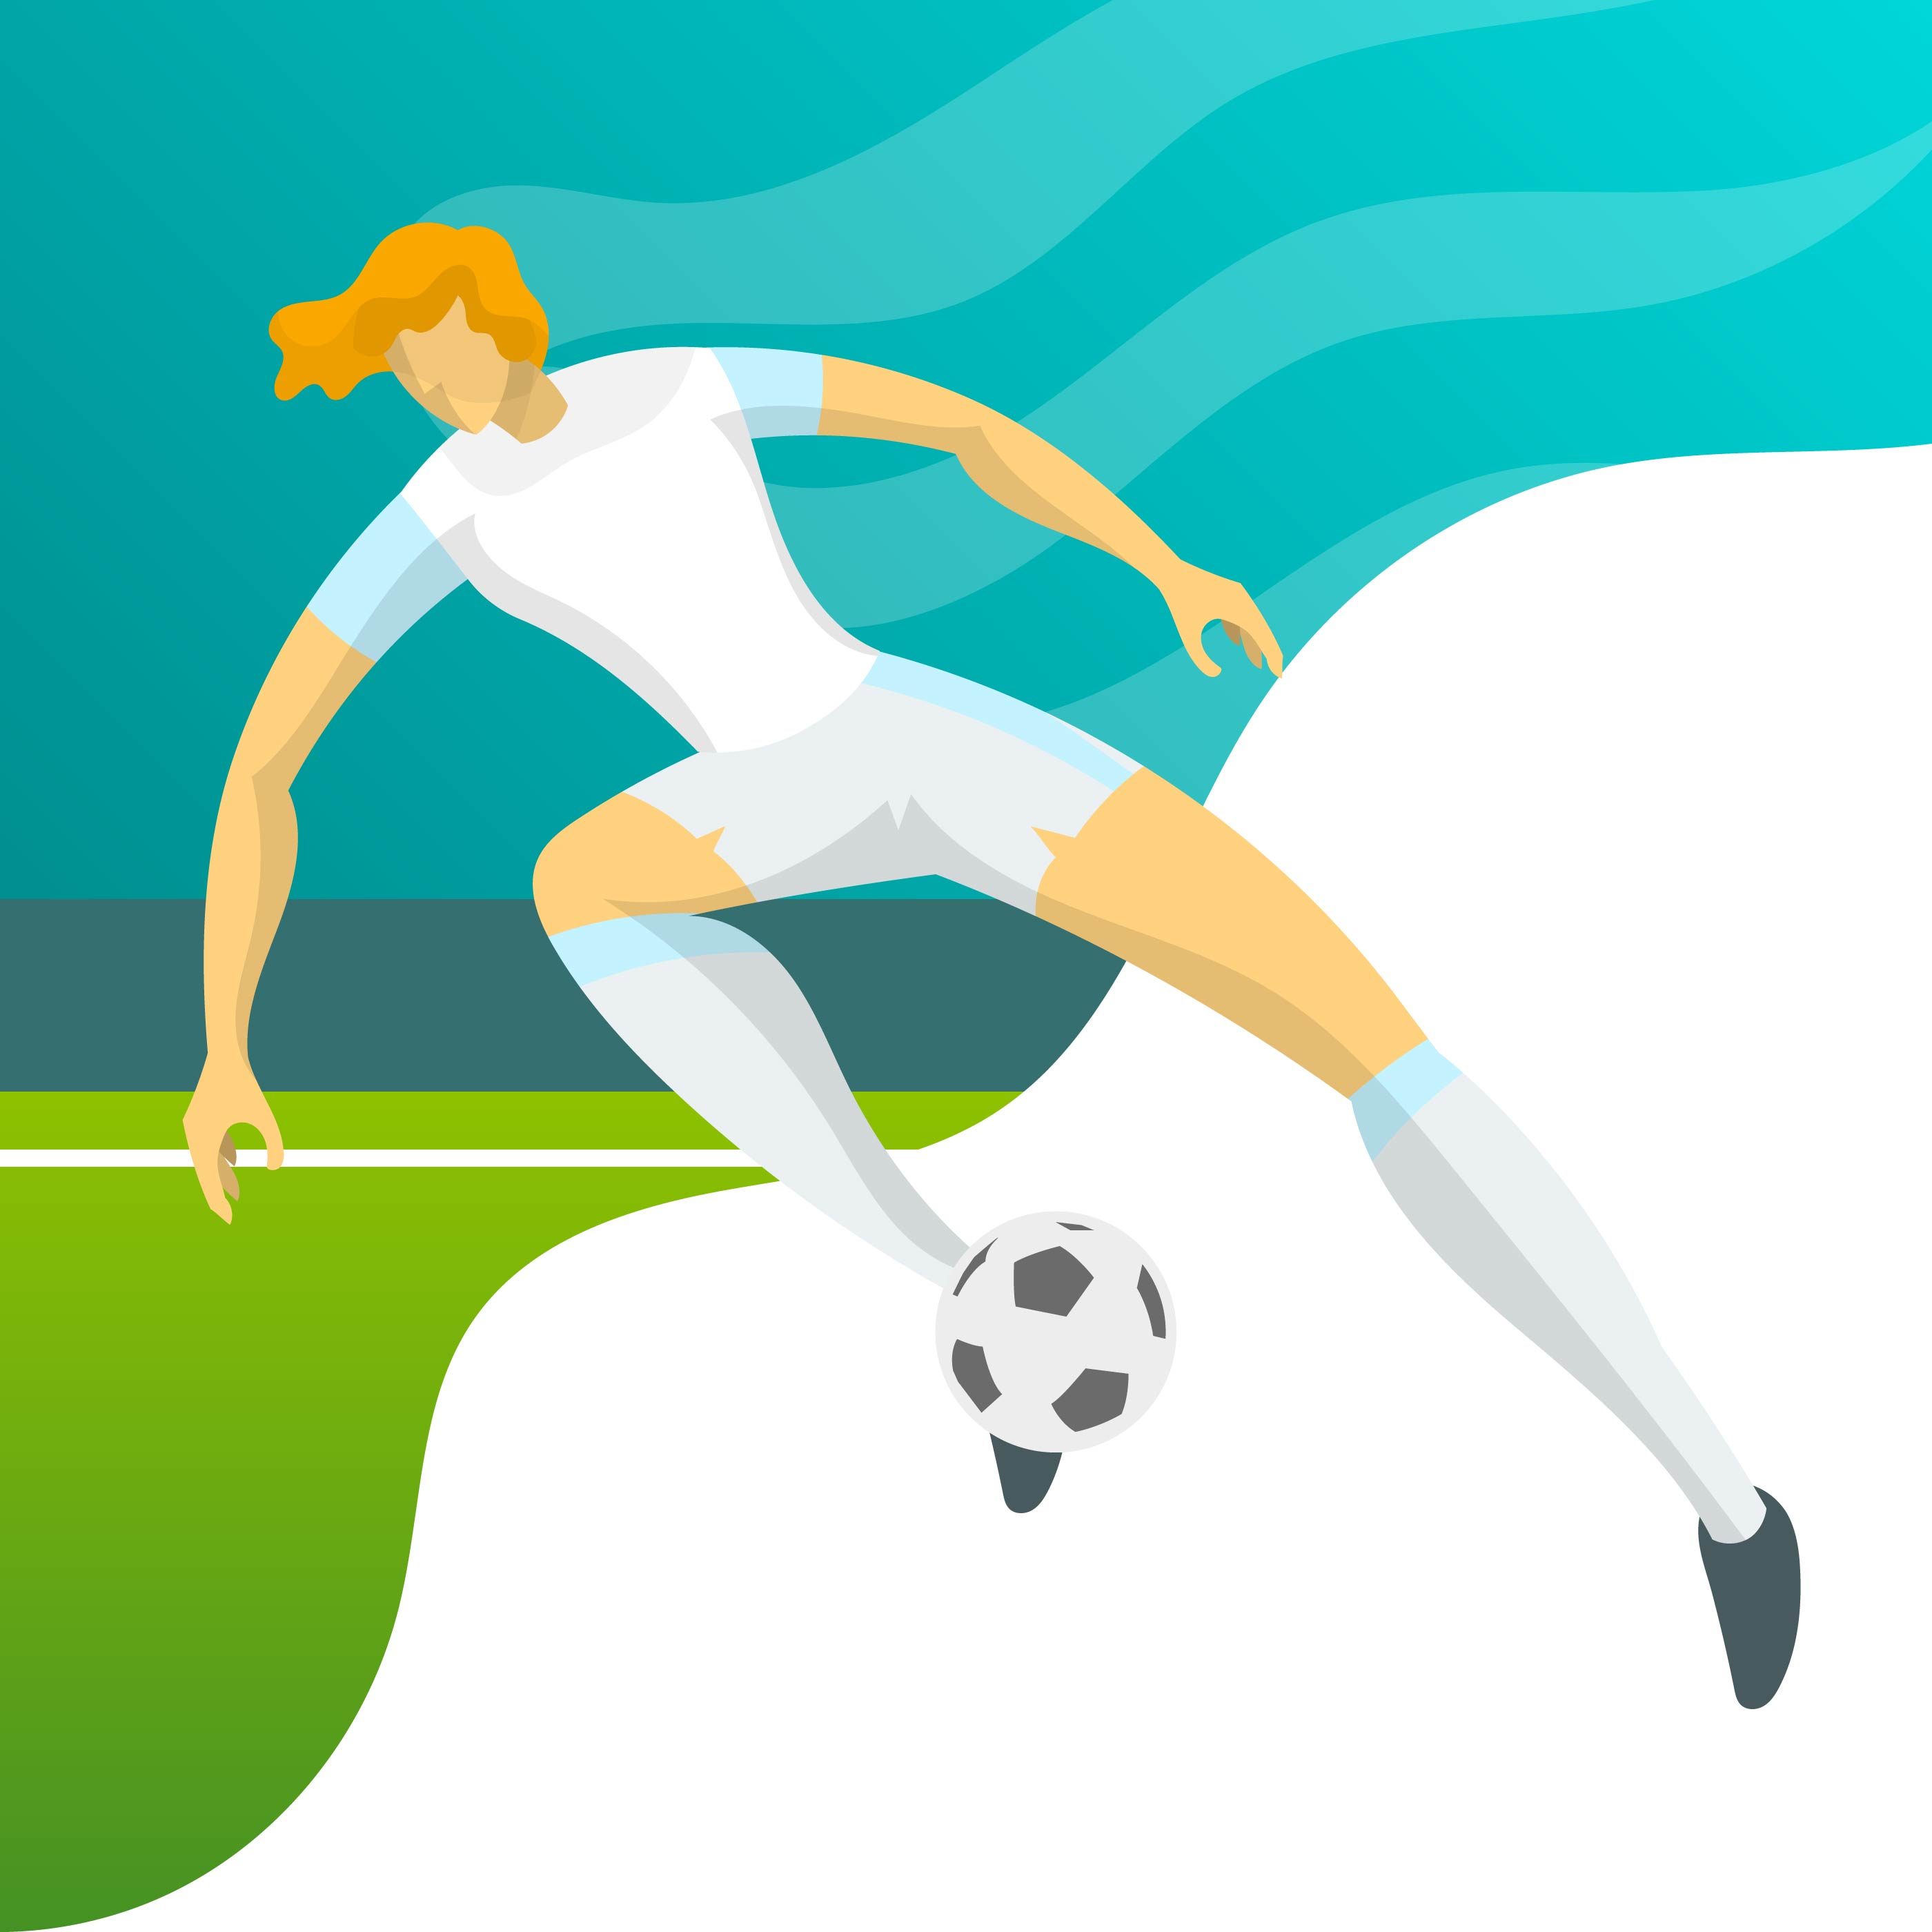 modern minimalist england soccer player for world cup 2018 passing a ball with gradient